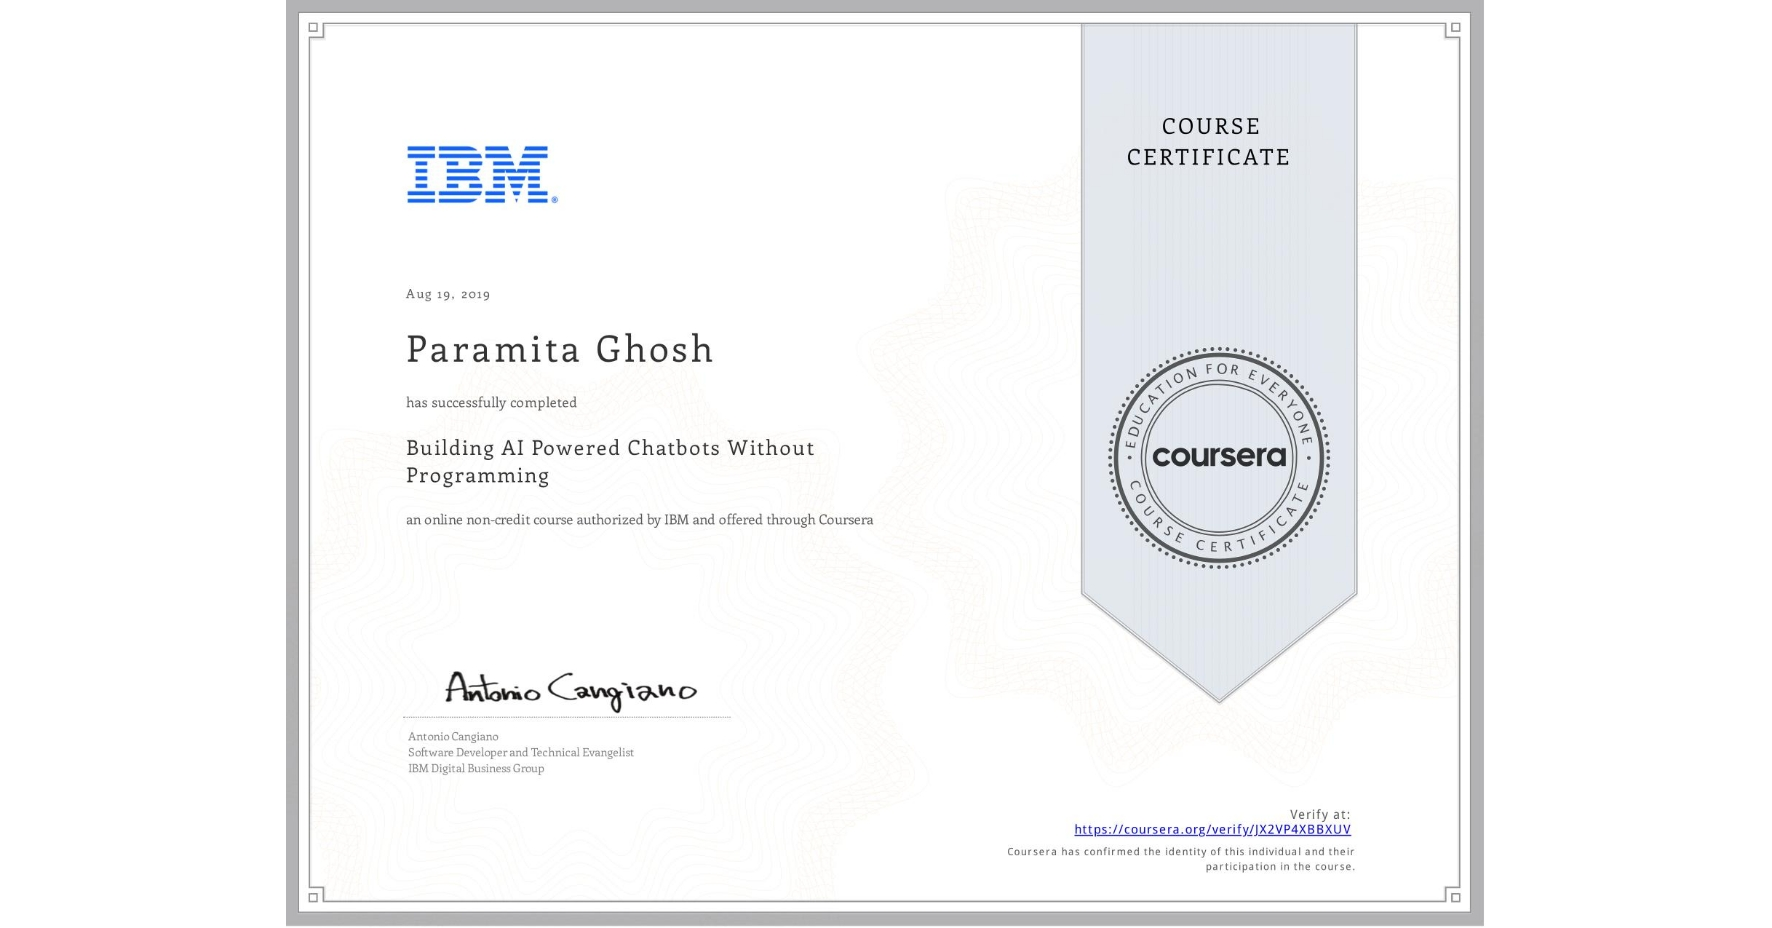 View certificate for Paramita Ghosh, Building AI Powered Chatbots Without Programming, an online non-credit course authorized by IBM and offered through Coursera